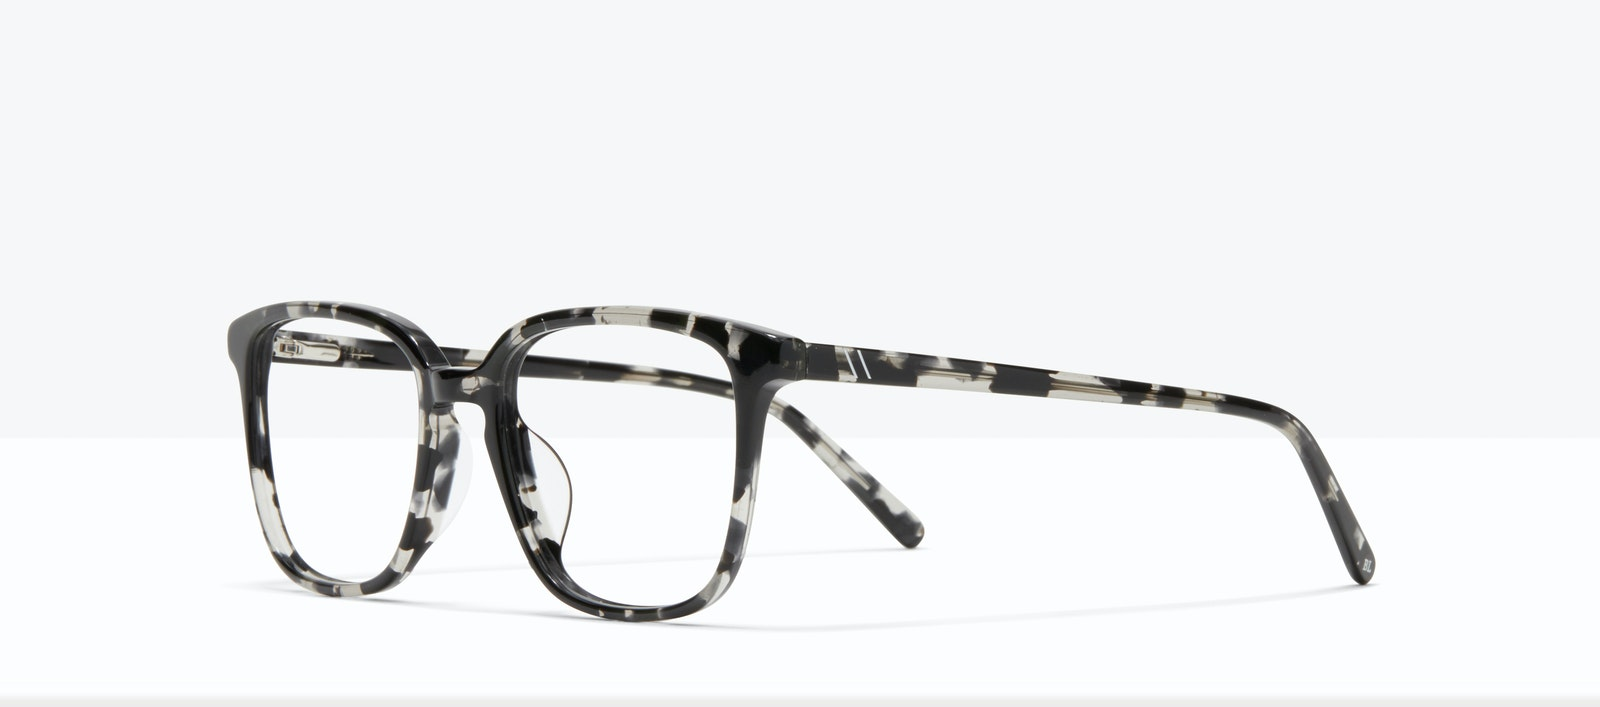 Affordable Fashion Glasses Square Eyeglasses Men Fellow XL Black Tort Tilt